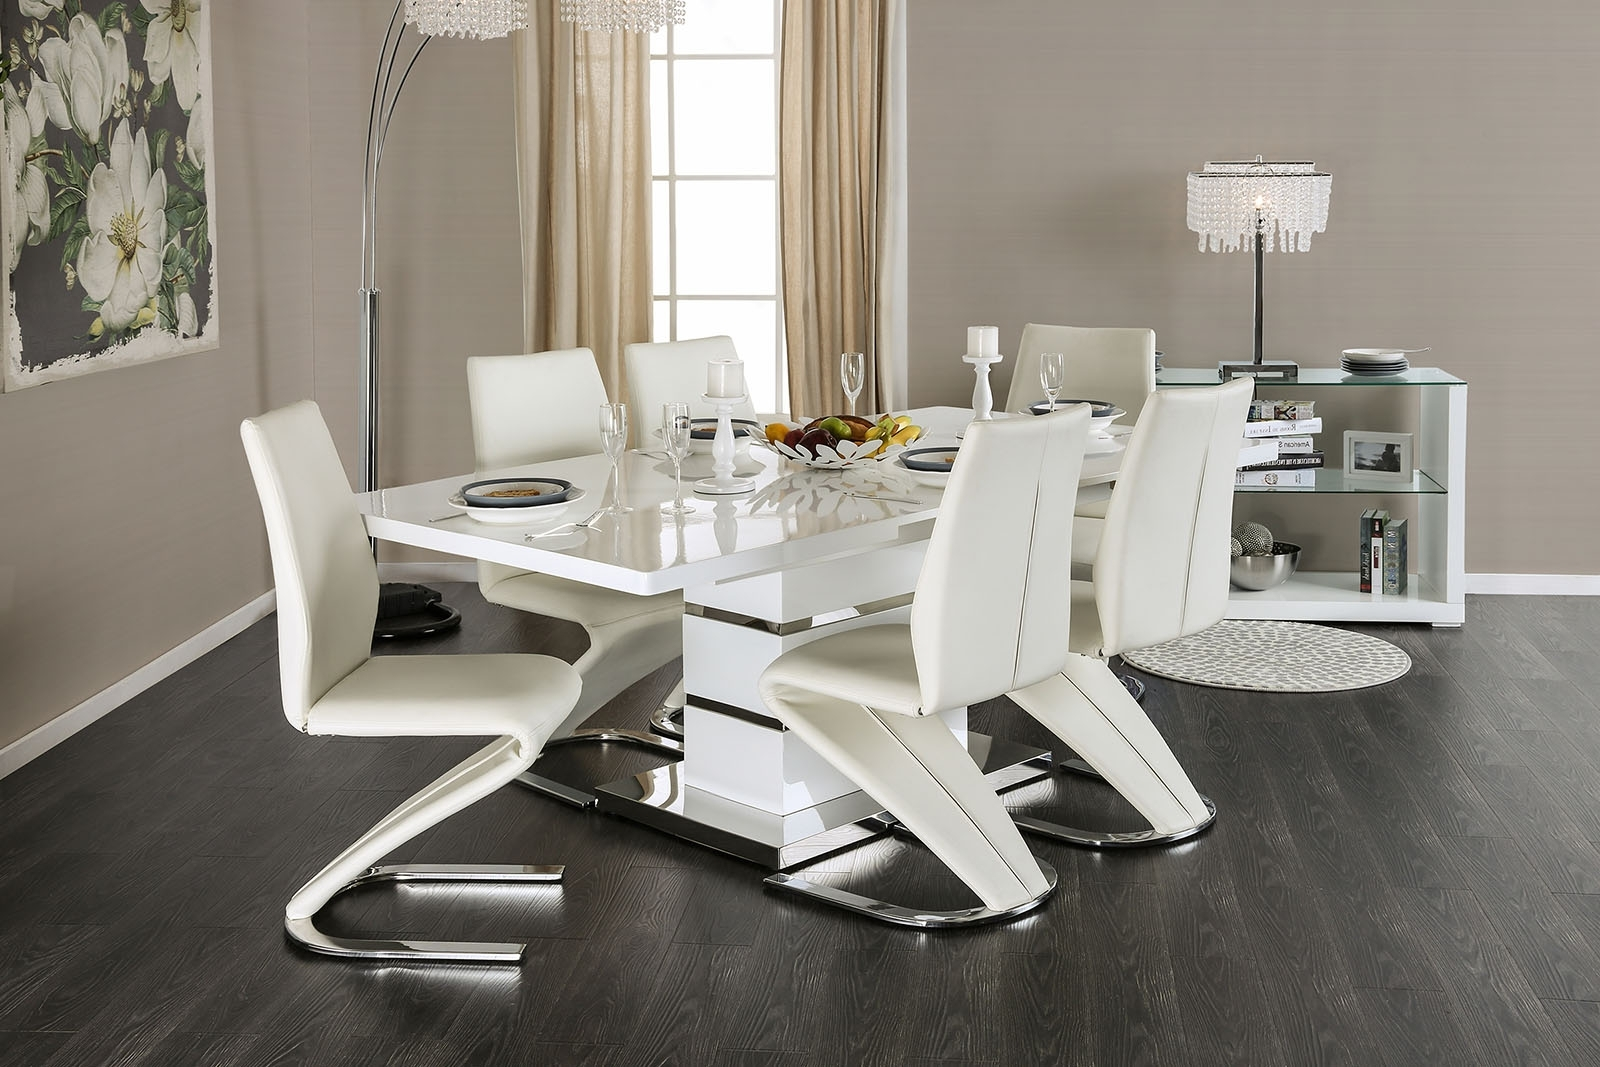 Newest Midvale Contemporary Style White High Gloss Lacquer Finish & Chrome In White Gloss Dining Tables Sets (Gallery 13 of 25)